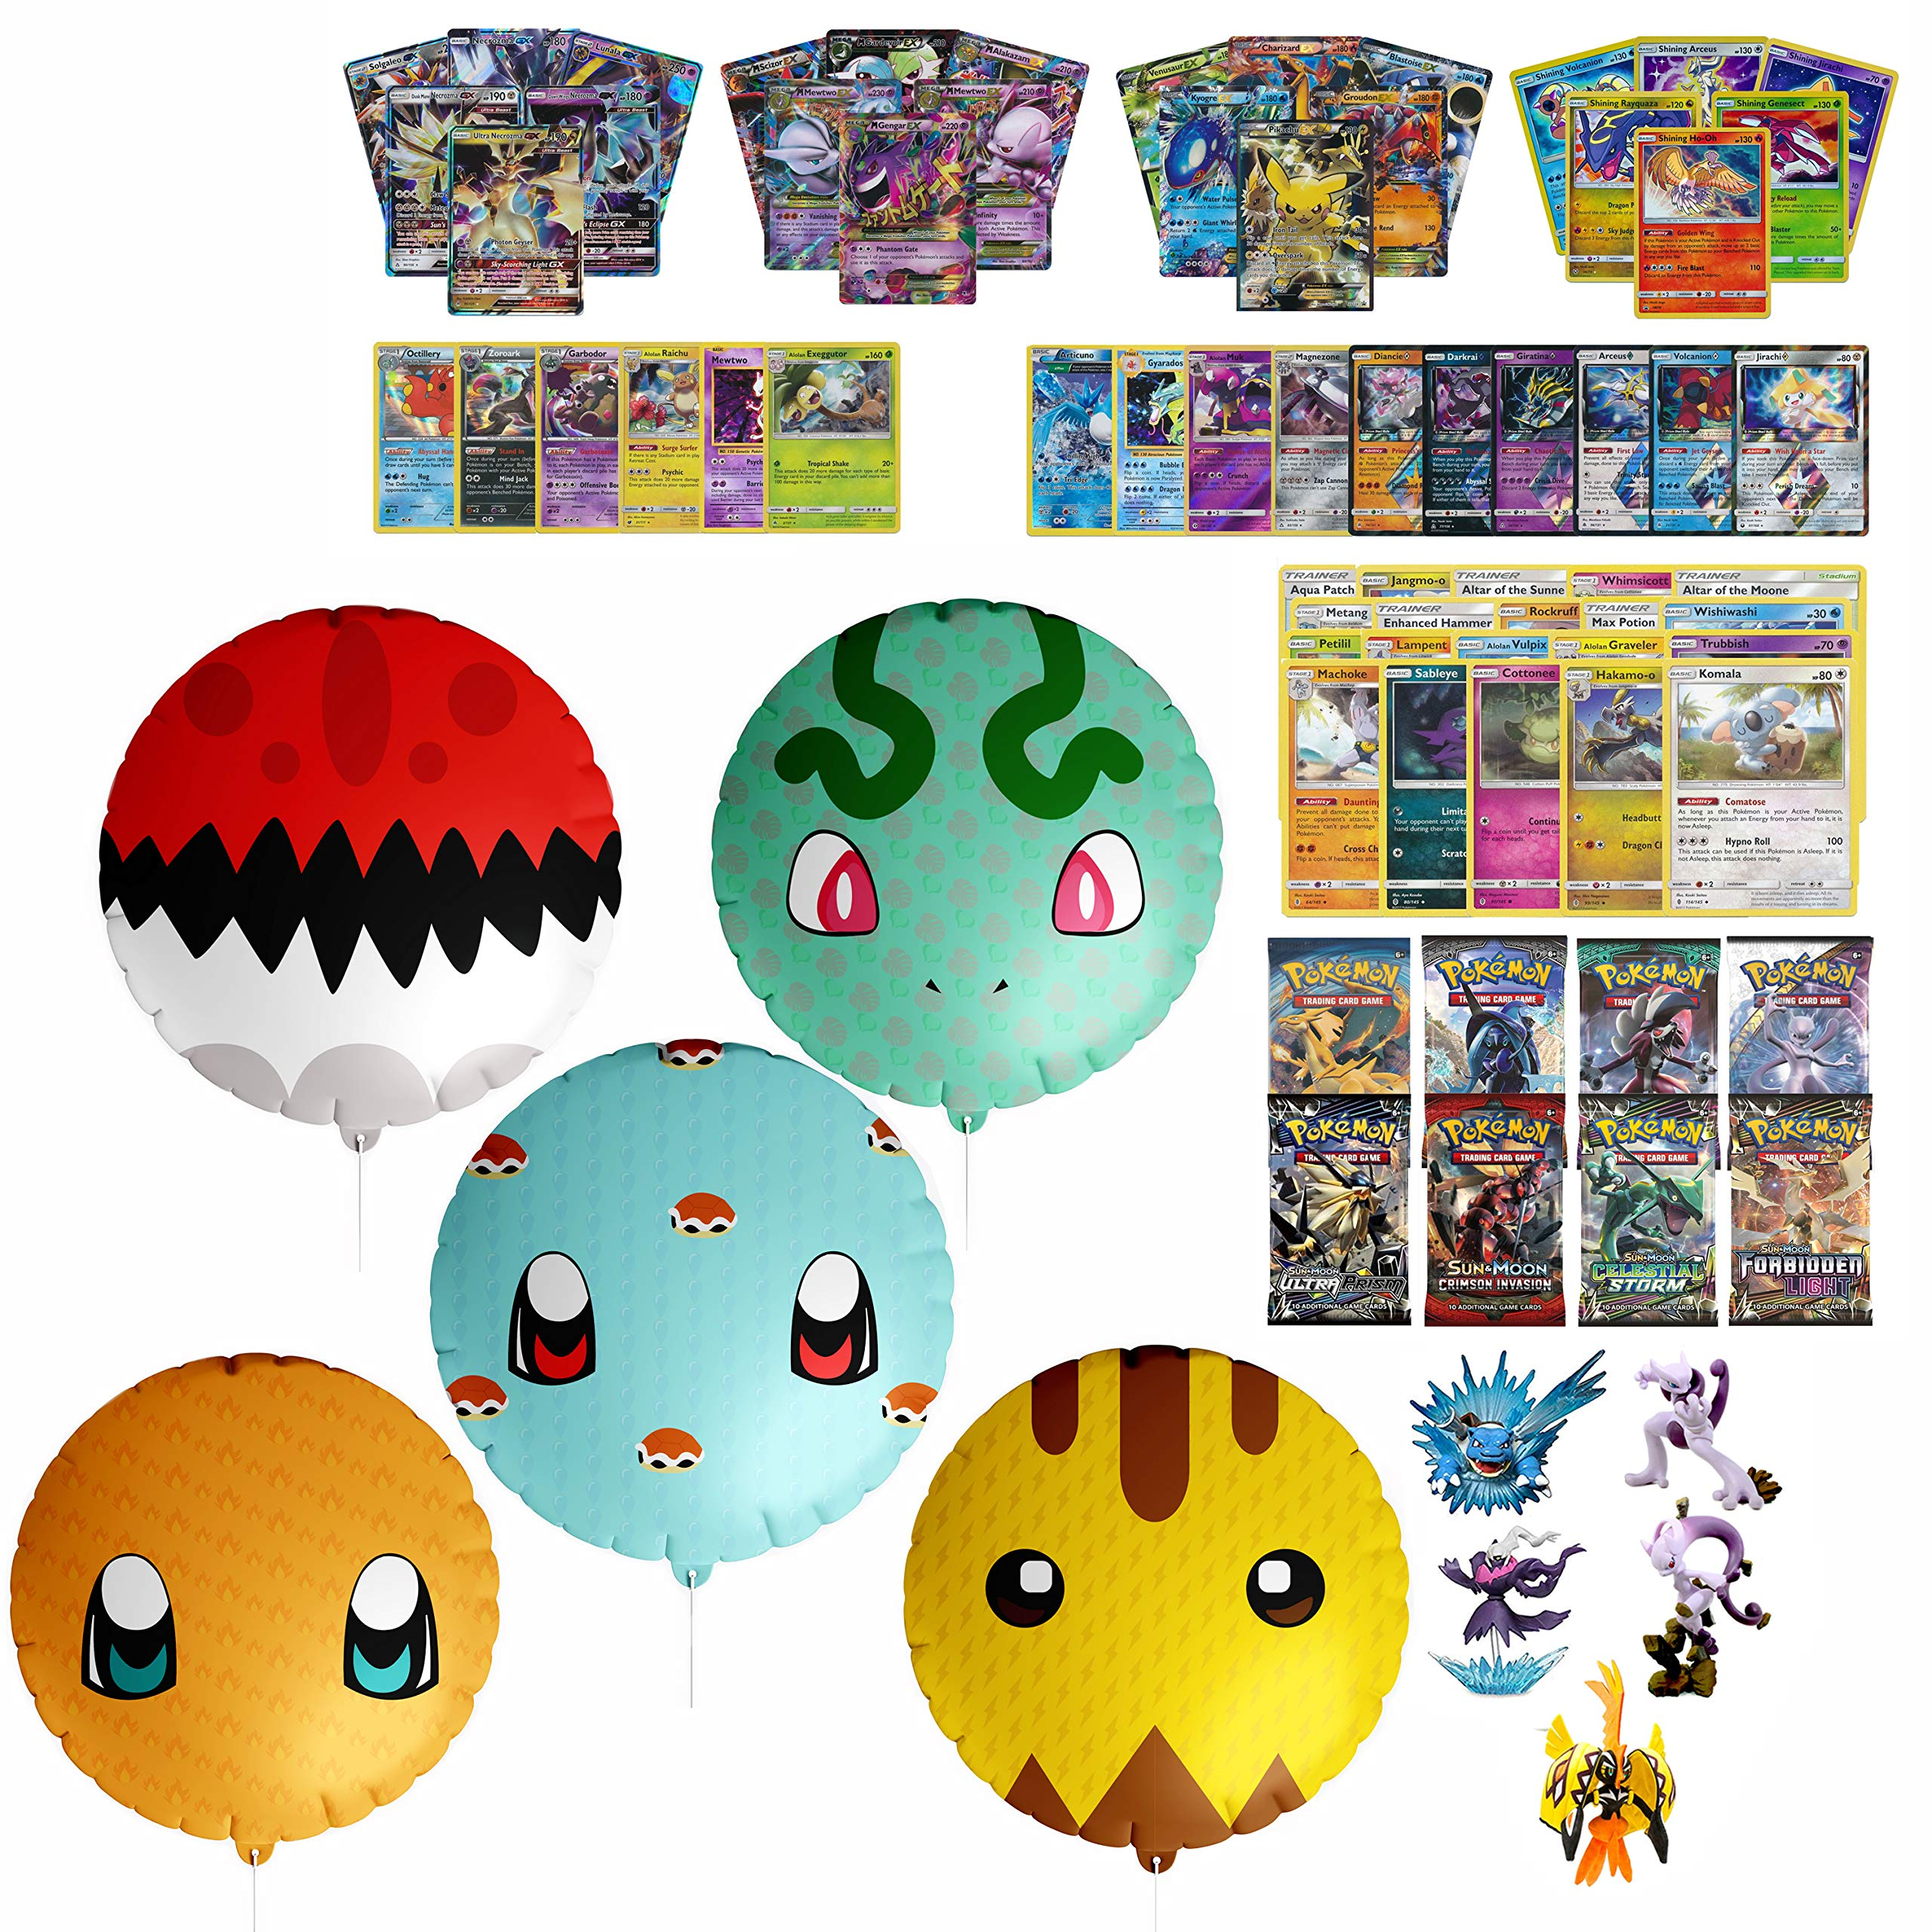 Playoly Pokemon Premium Collection 100 Cards with GX Mega EX Shining Holo 10 Rares 4 Booster Pack- 5 Pokemon Themed Balloons